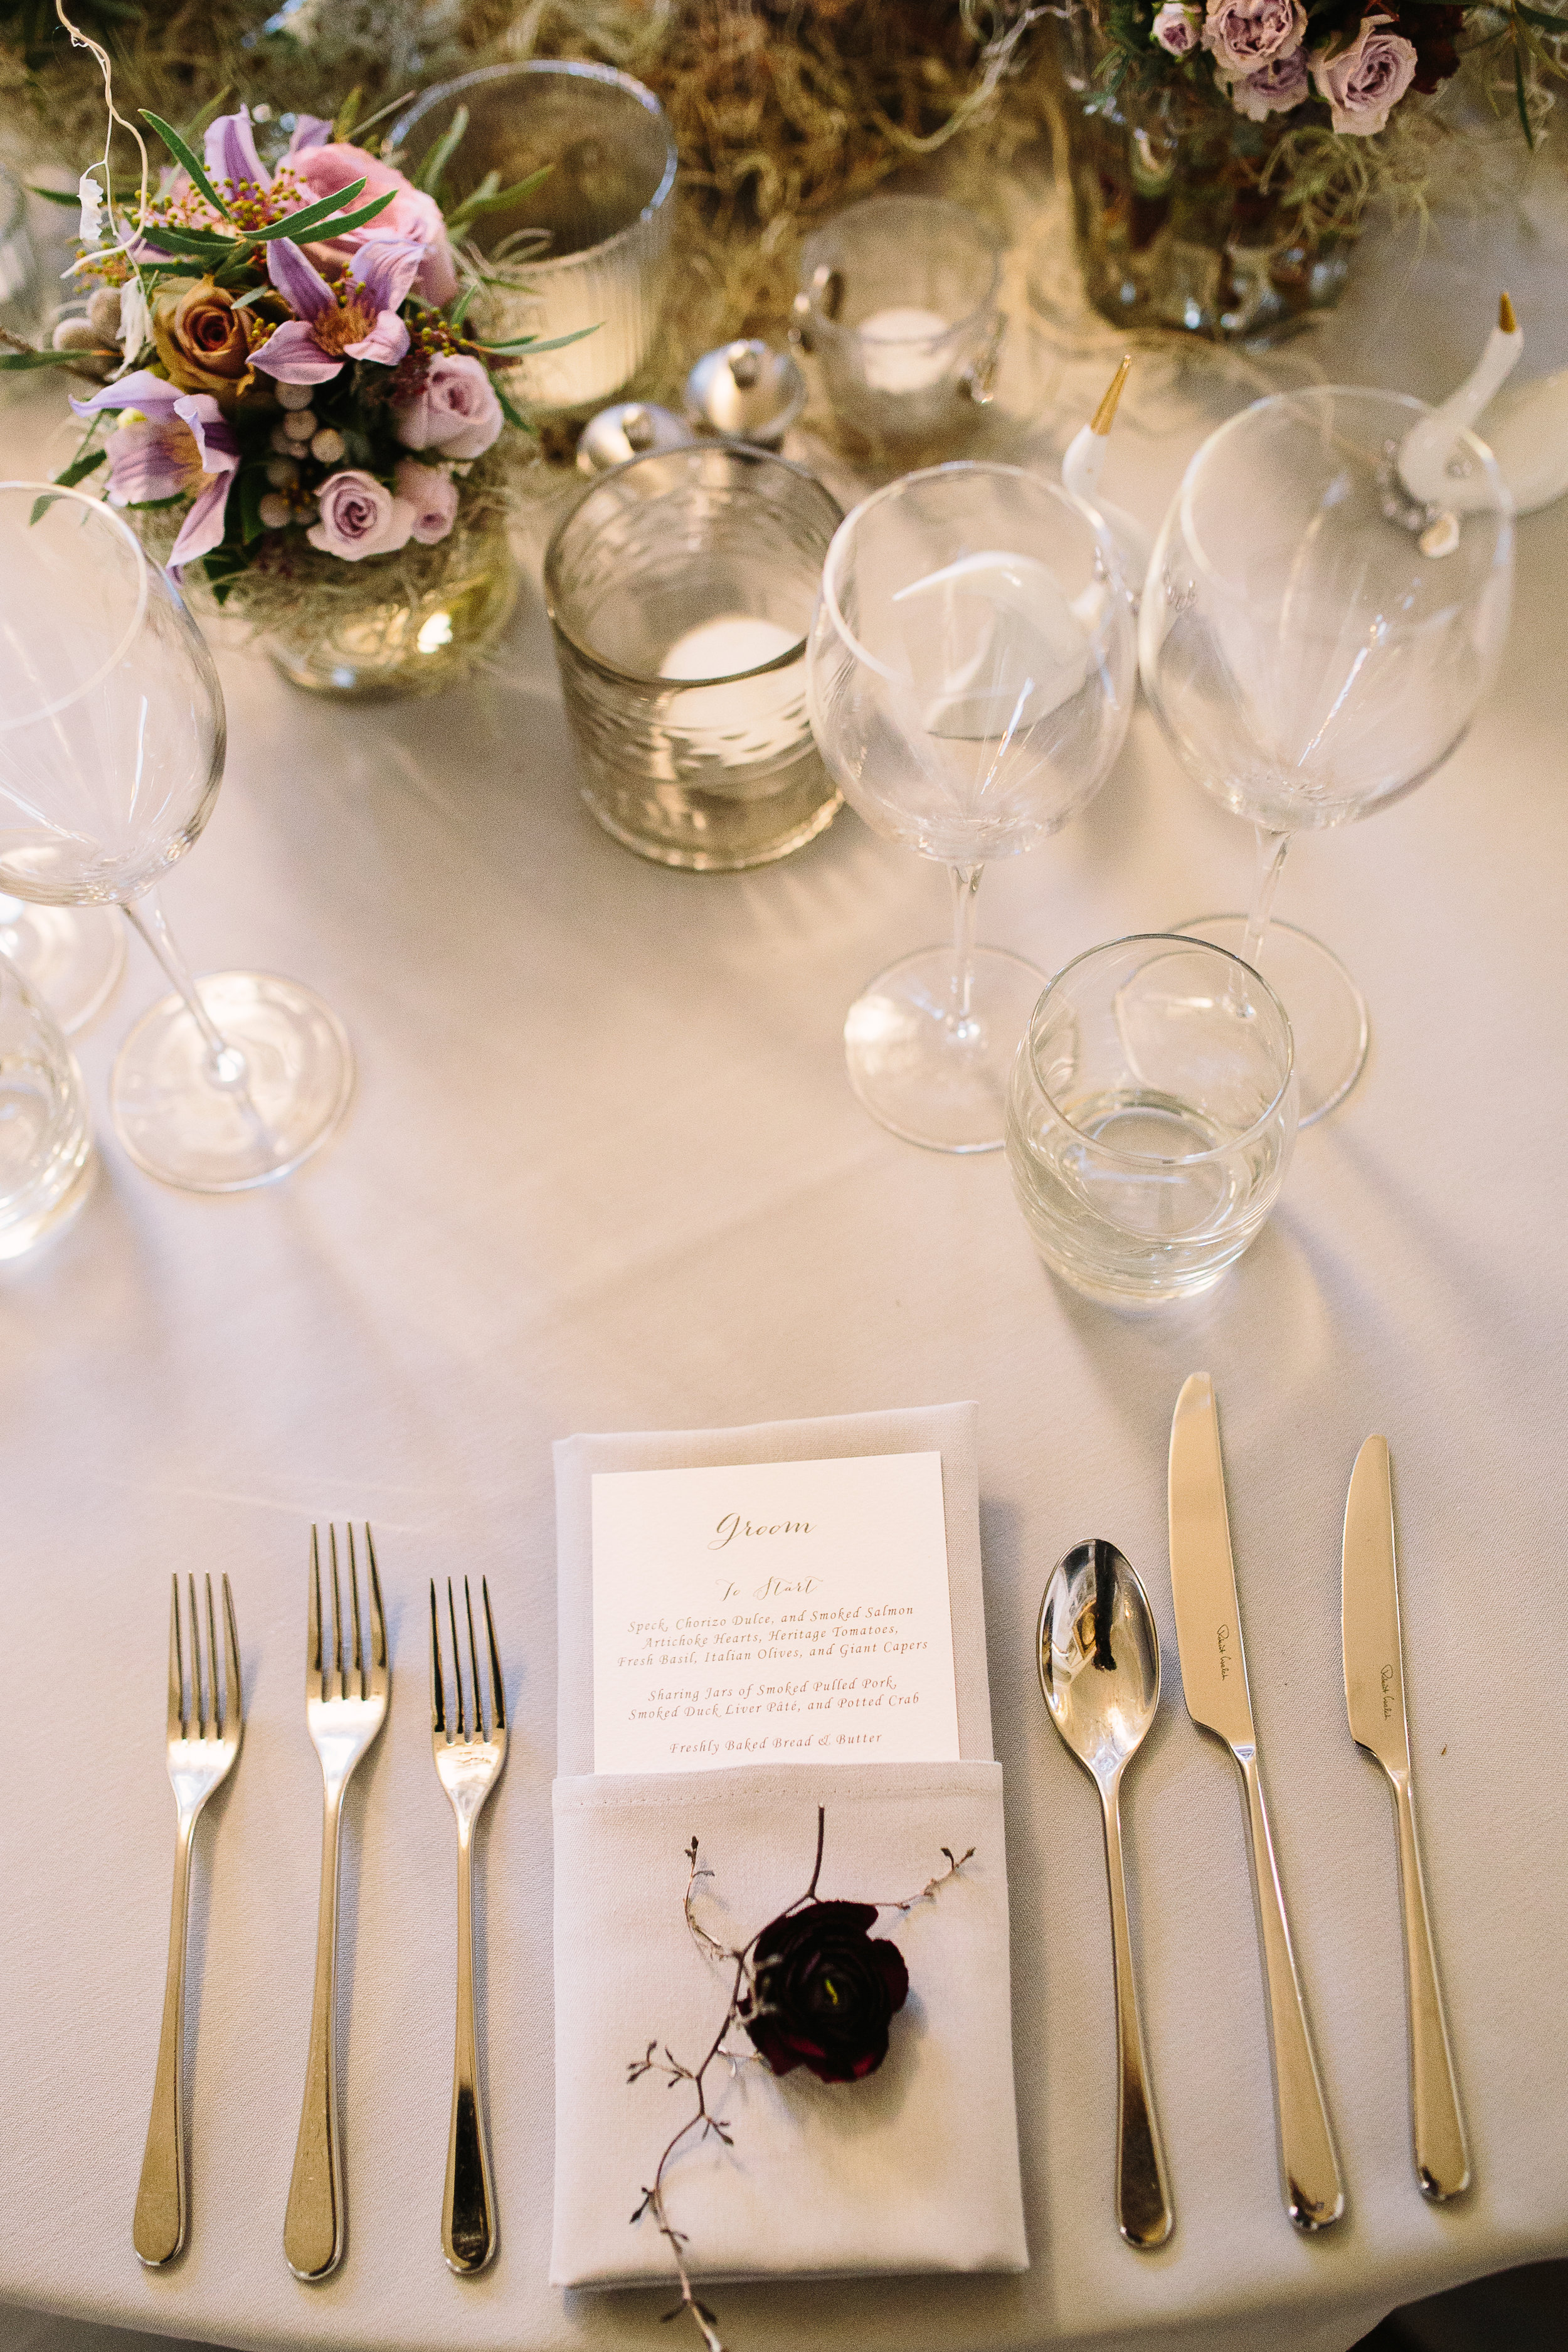 Luxury Place Setting at Aynhoe Park | Oxford Wedding Planner Vanilla Rose Weddings